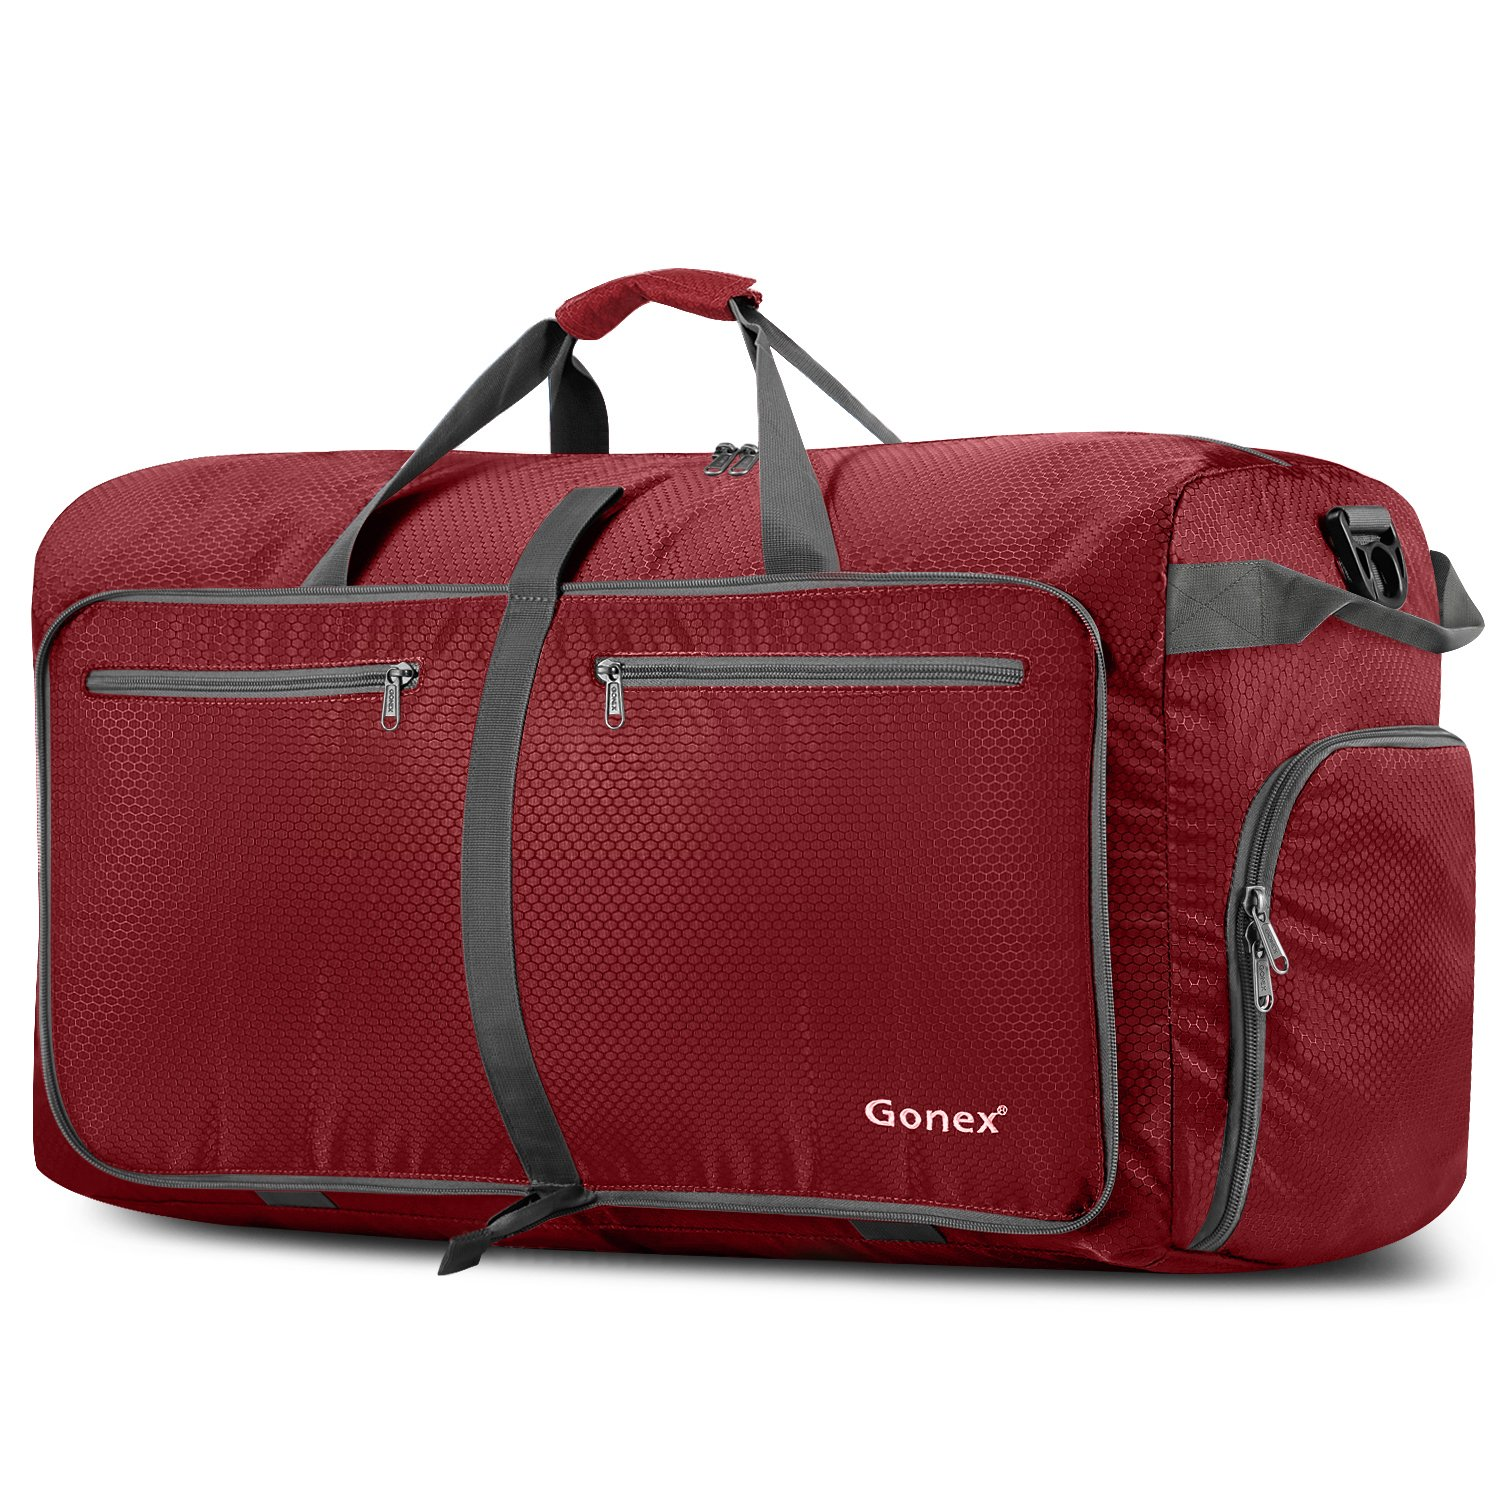 Gonex 100L Packable Travel Duffle Bag, Extra Large Luggage Duffel 9 Color Choices